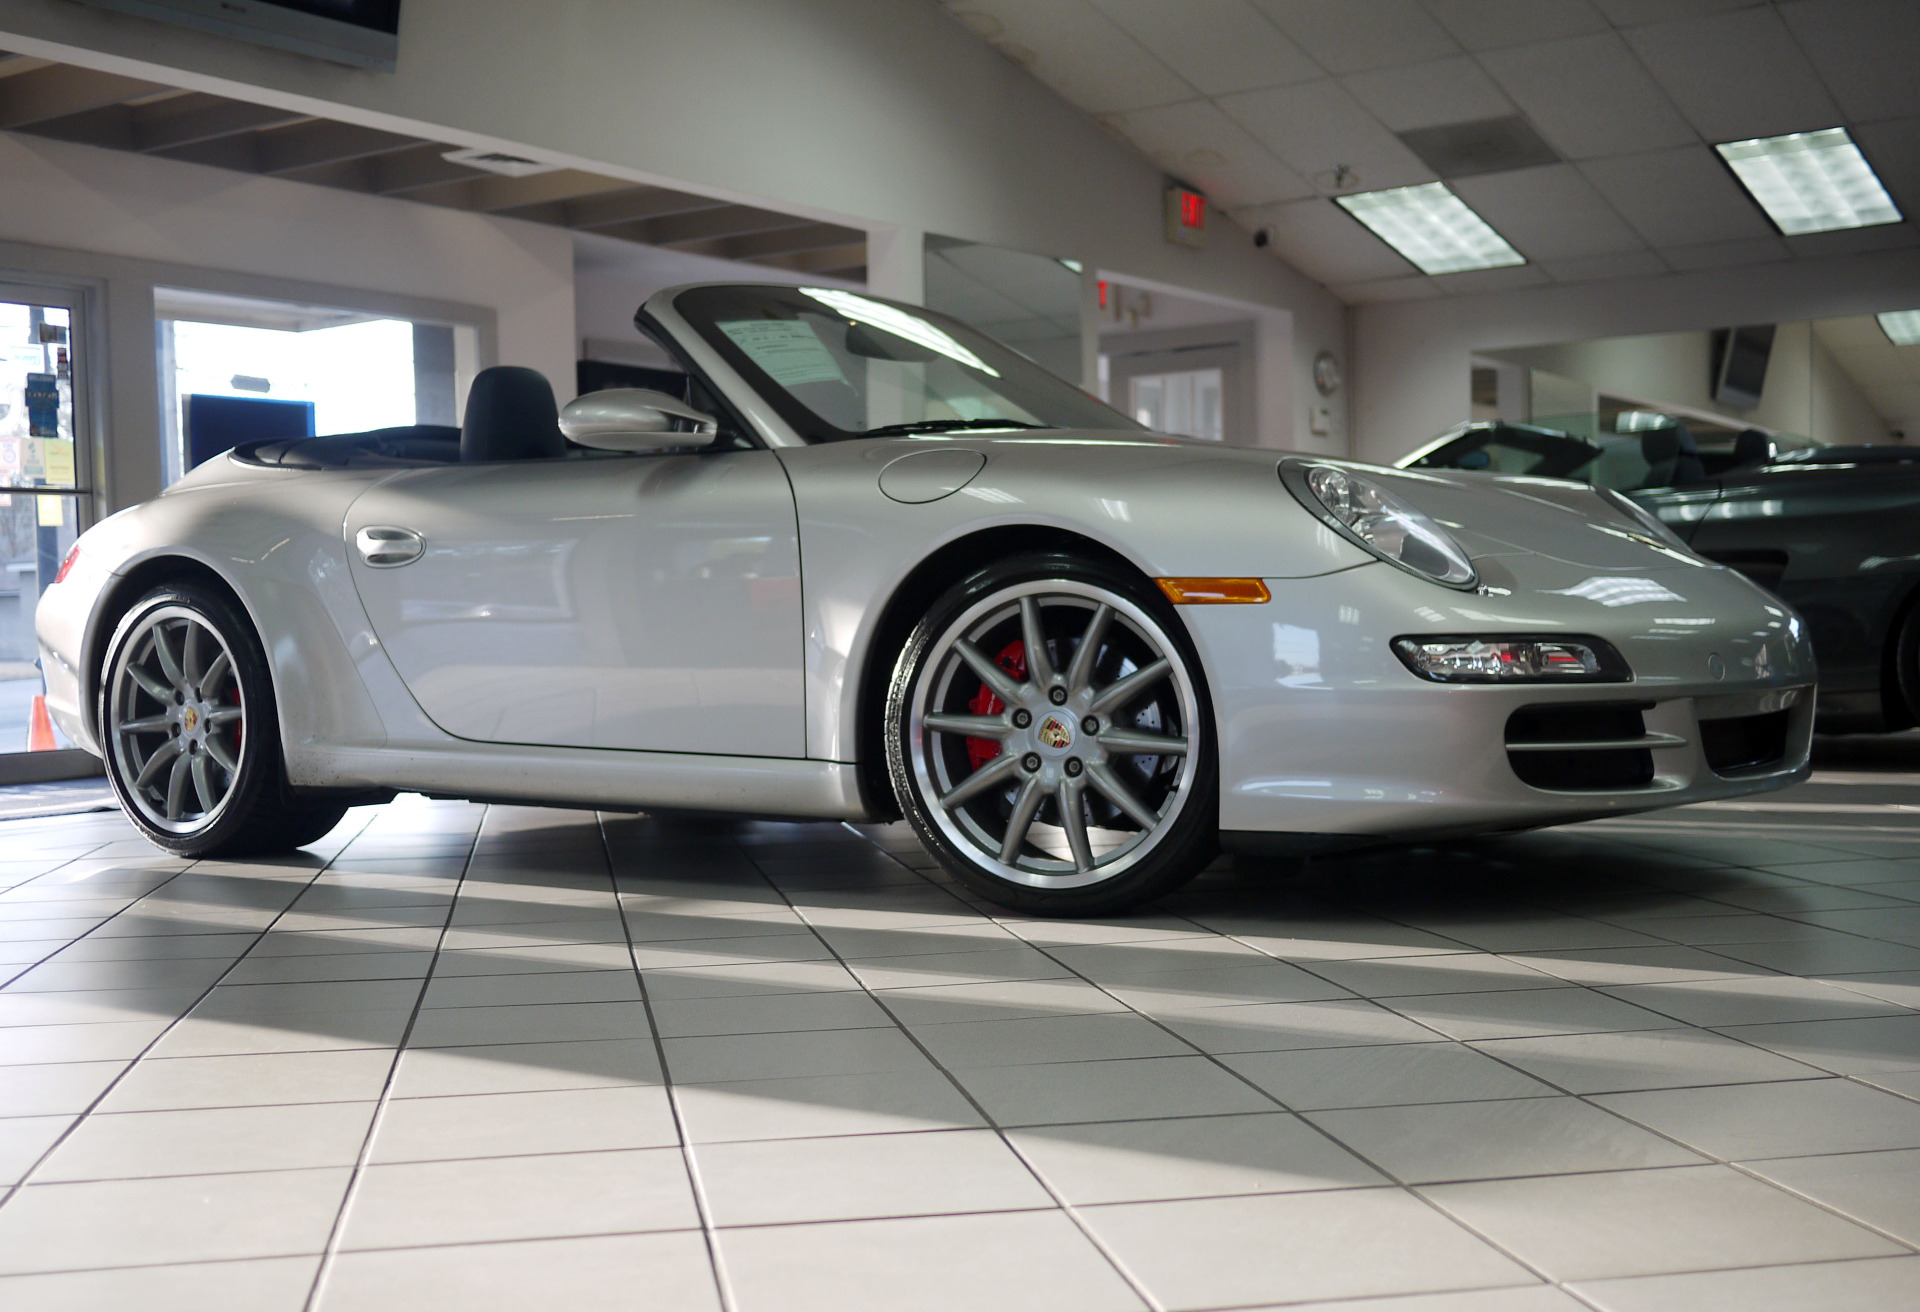 used 2006 porsche 911 carrera s marietta ga. Black Bedroom Furniture Sets. Home Design Ideas